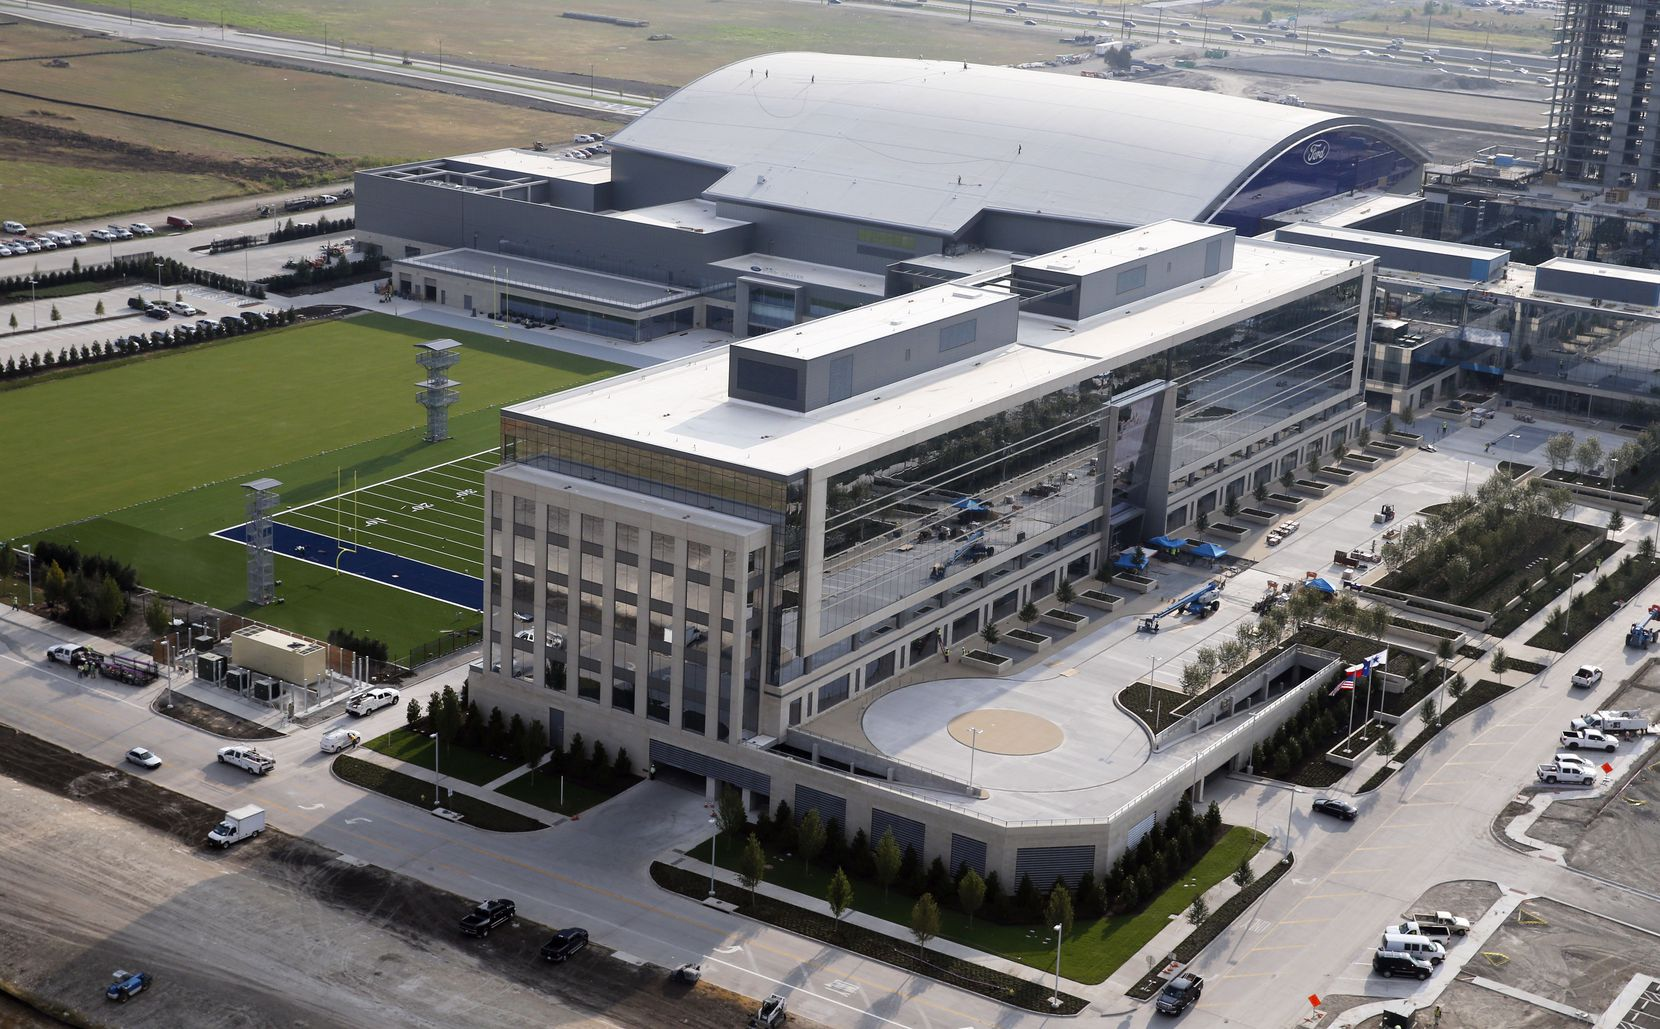 Cowboys legend Darren Woodson is becoming a partner at Frisco-based property brokerage firm ESRP, where he 'll be working next door to the Cowboys' new headquarters and practice field at the Star in Frisco.